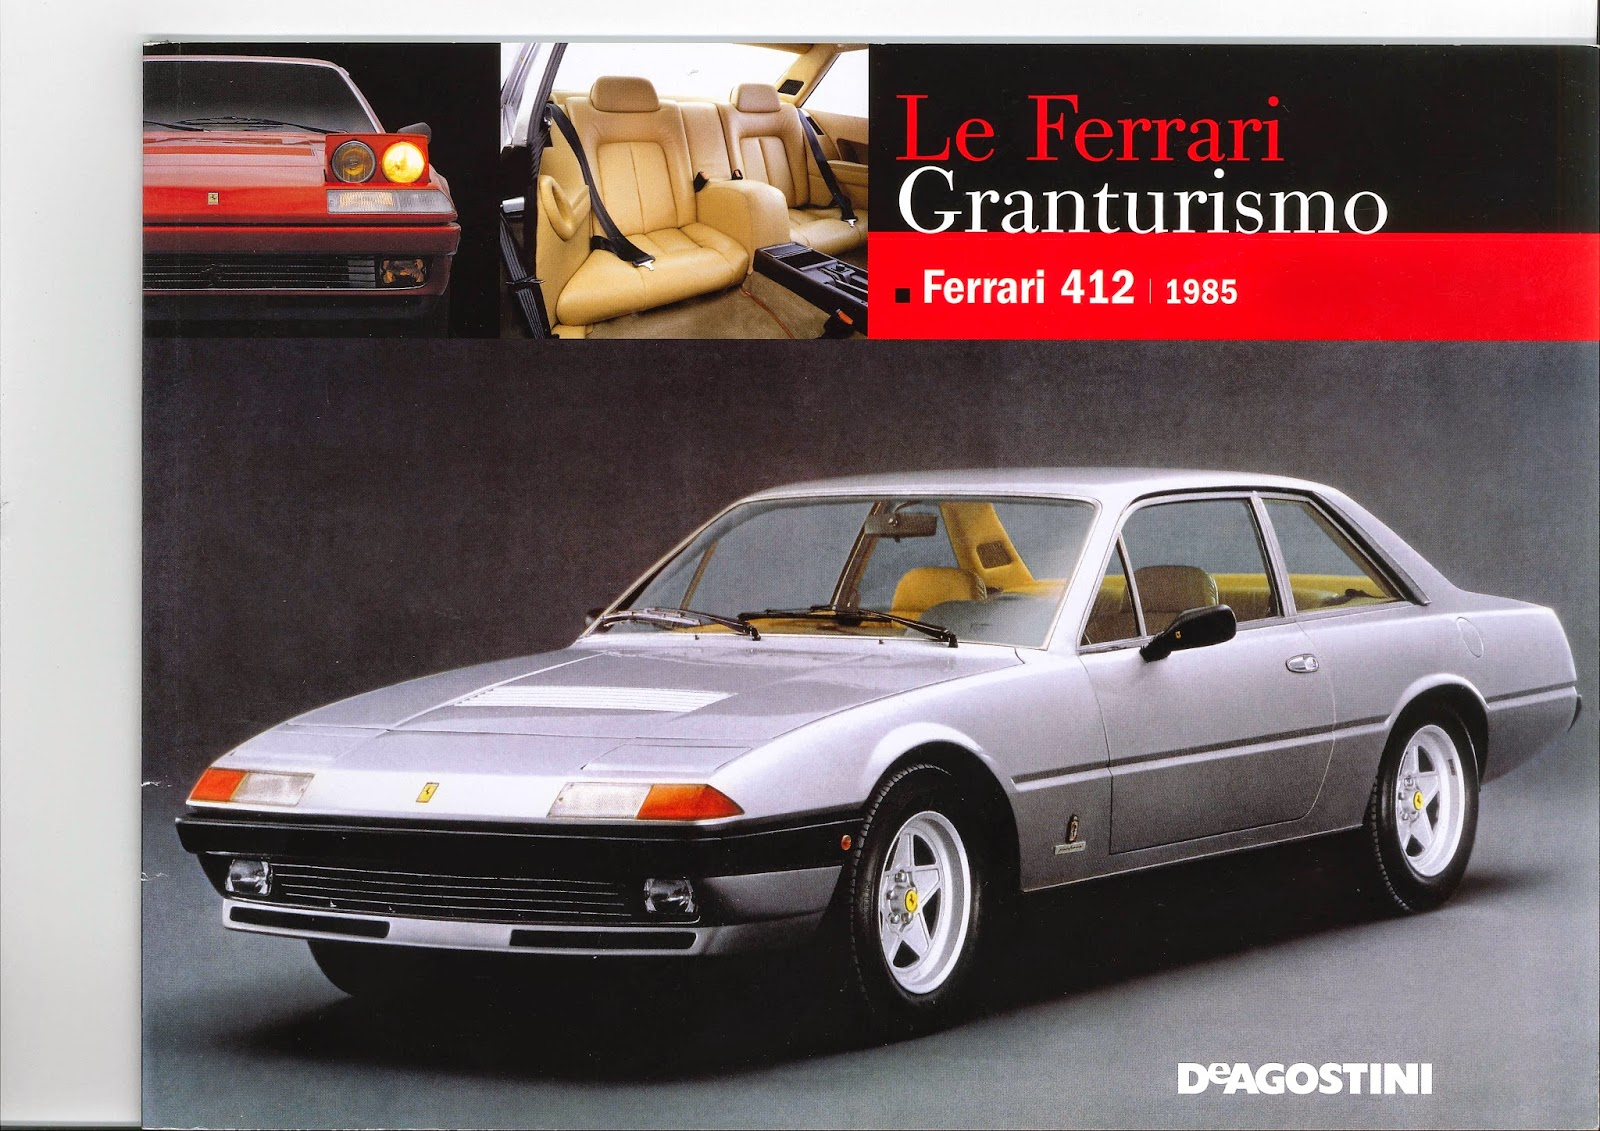 Ferrari 400 august 2014 but it was not worth it in my opinion i couldnt be bothered to scan it entirely the content is more or less a copy of the 412 brochure vanachro Gallery